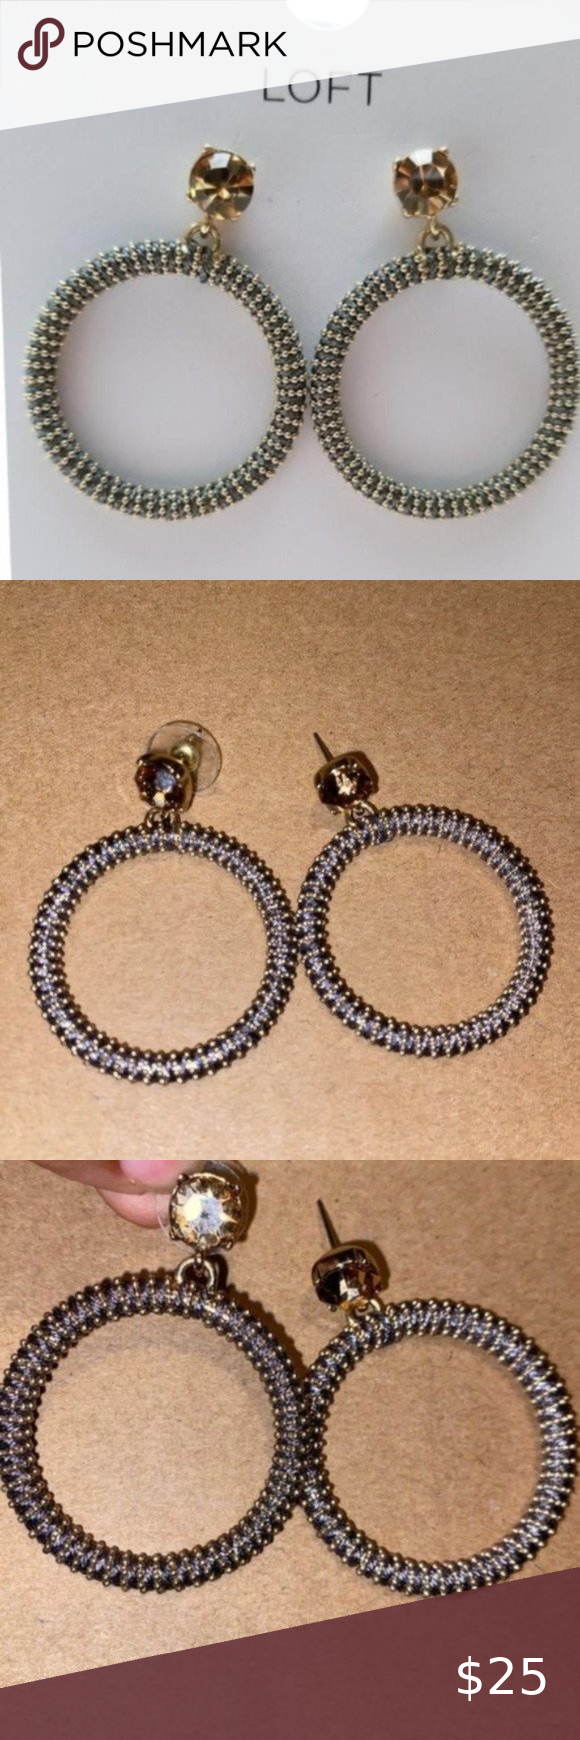 Ann Taylor LOFT Yellow and Gold Crystal Earrings